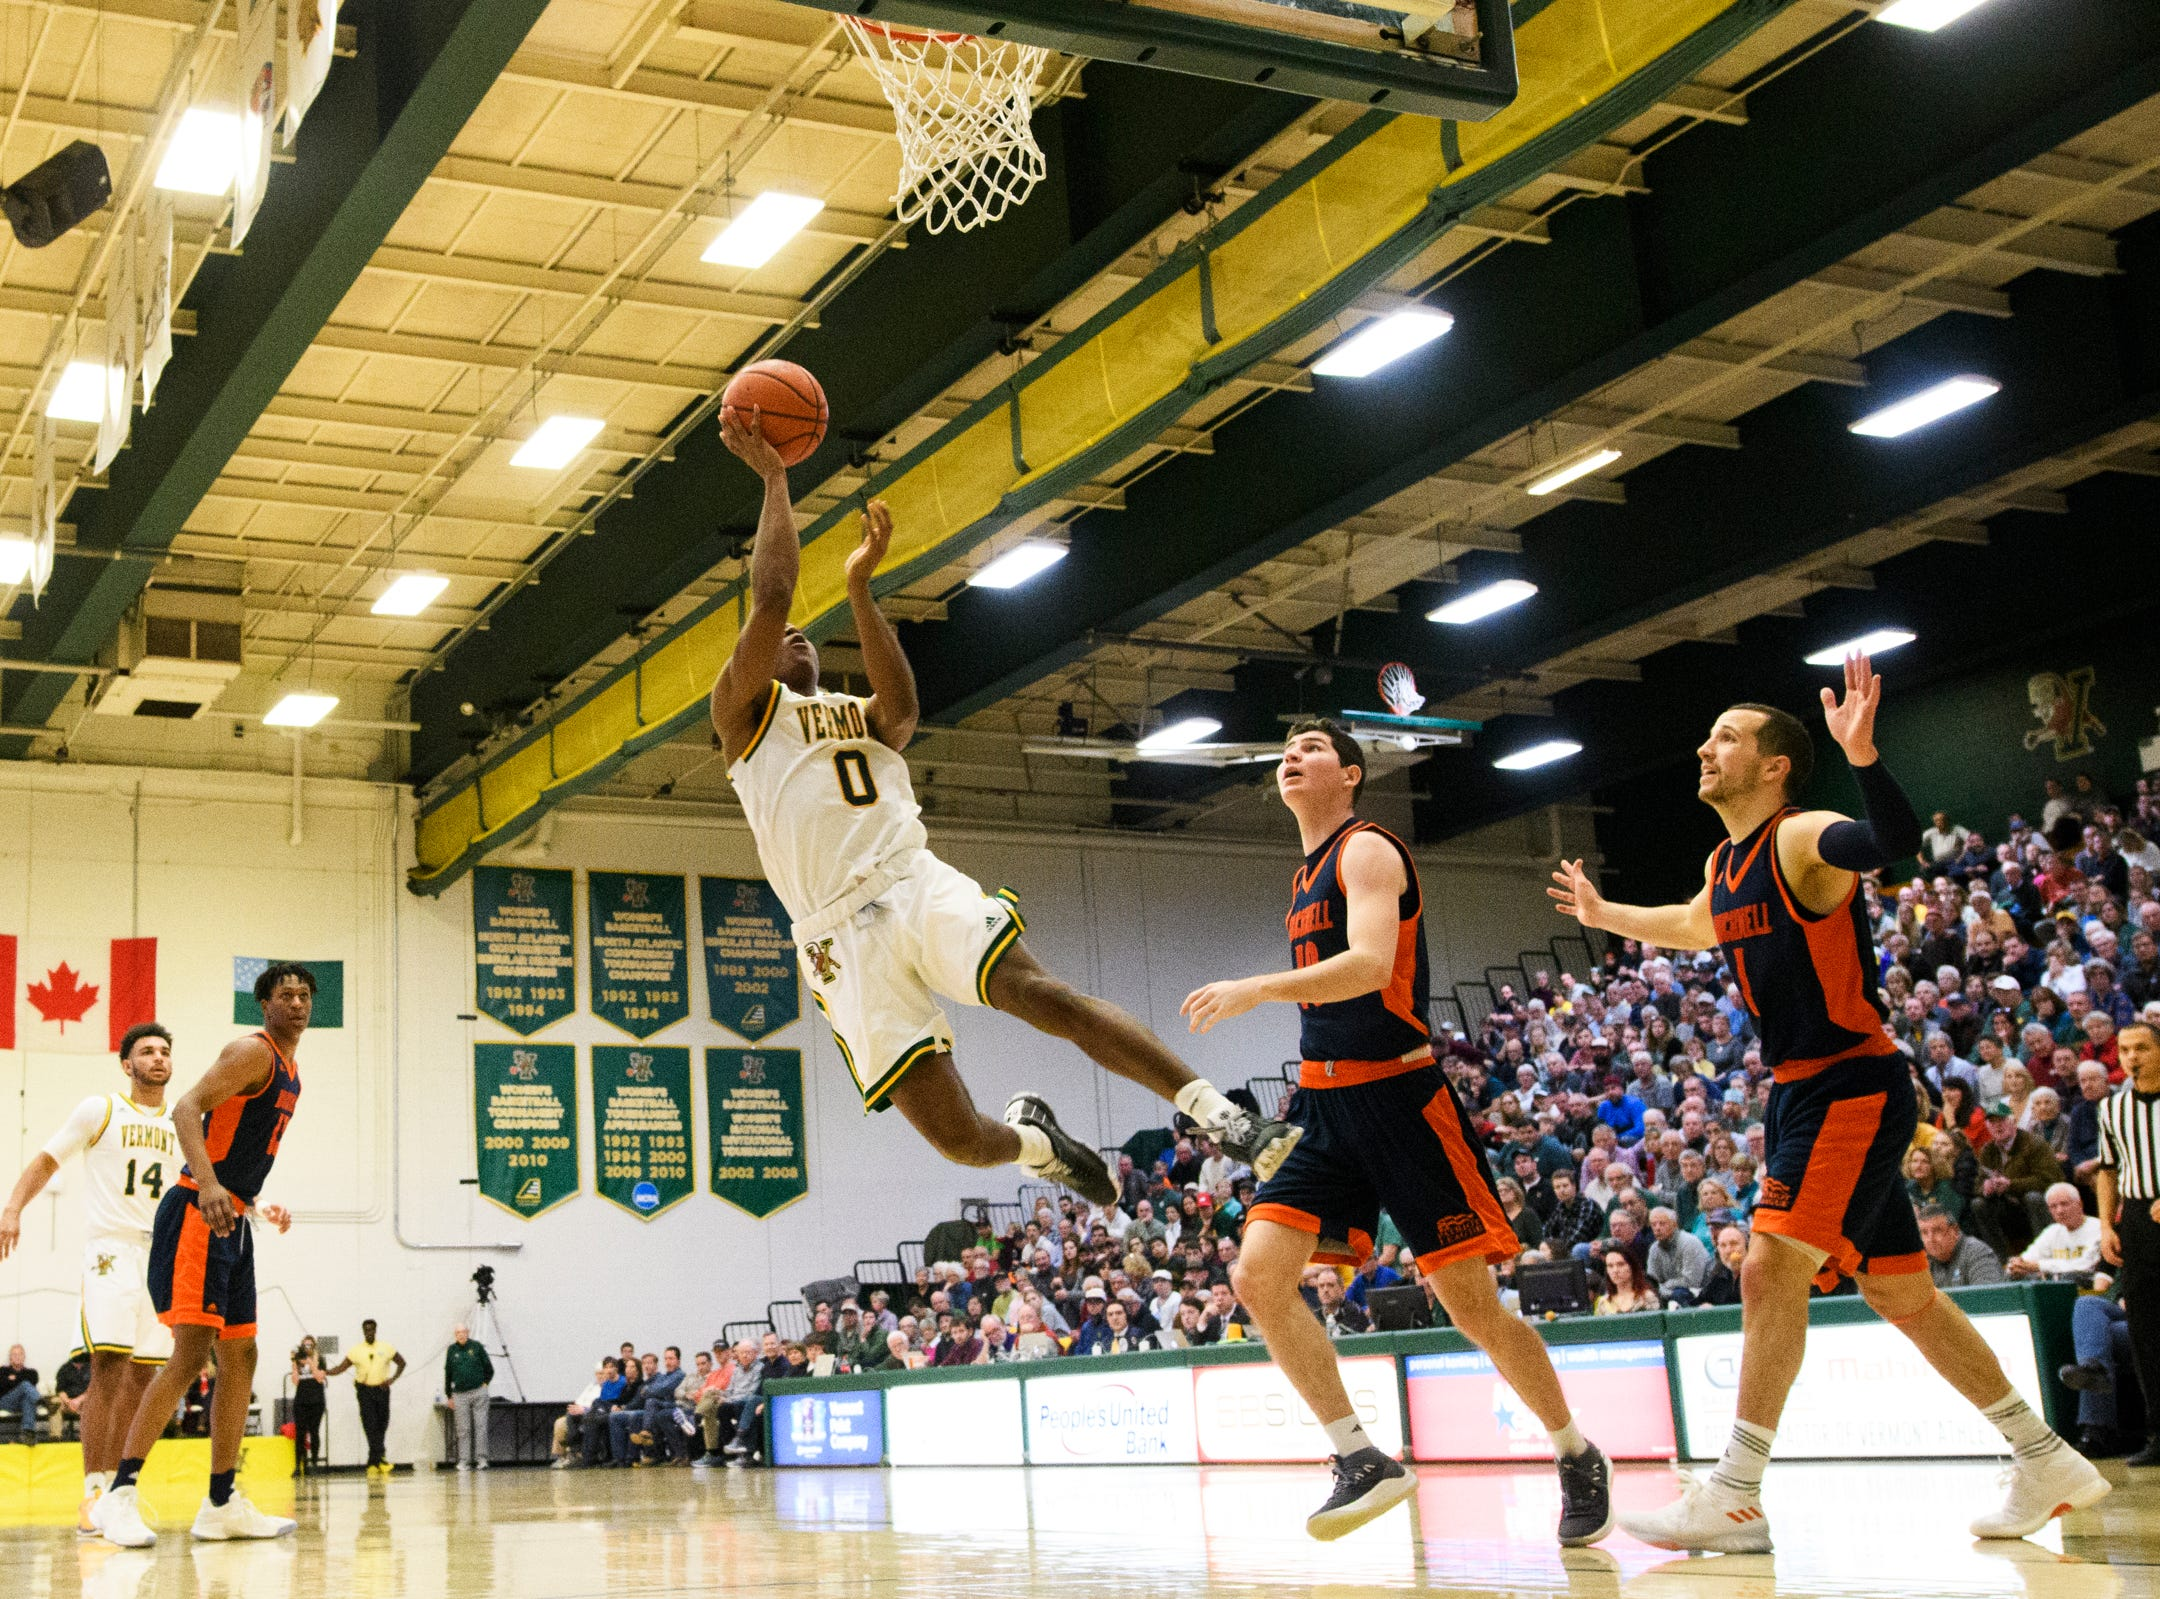 Vermont guard Stef Smith (0) leaps for a lay up during the men's basketball game between the Bucknell Bison and the Vermont Catamounts at Patrick Gym on Sunday afternoon November 25, 2018 in Burlington.